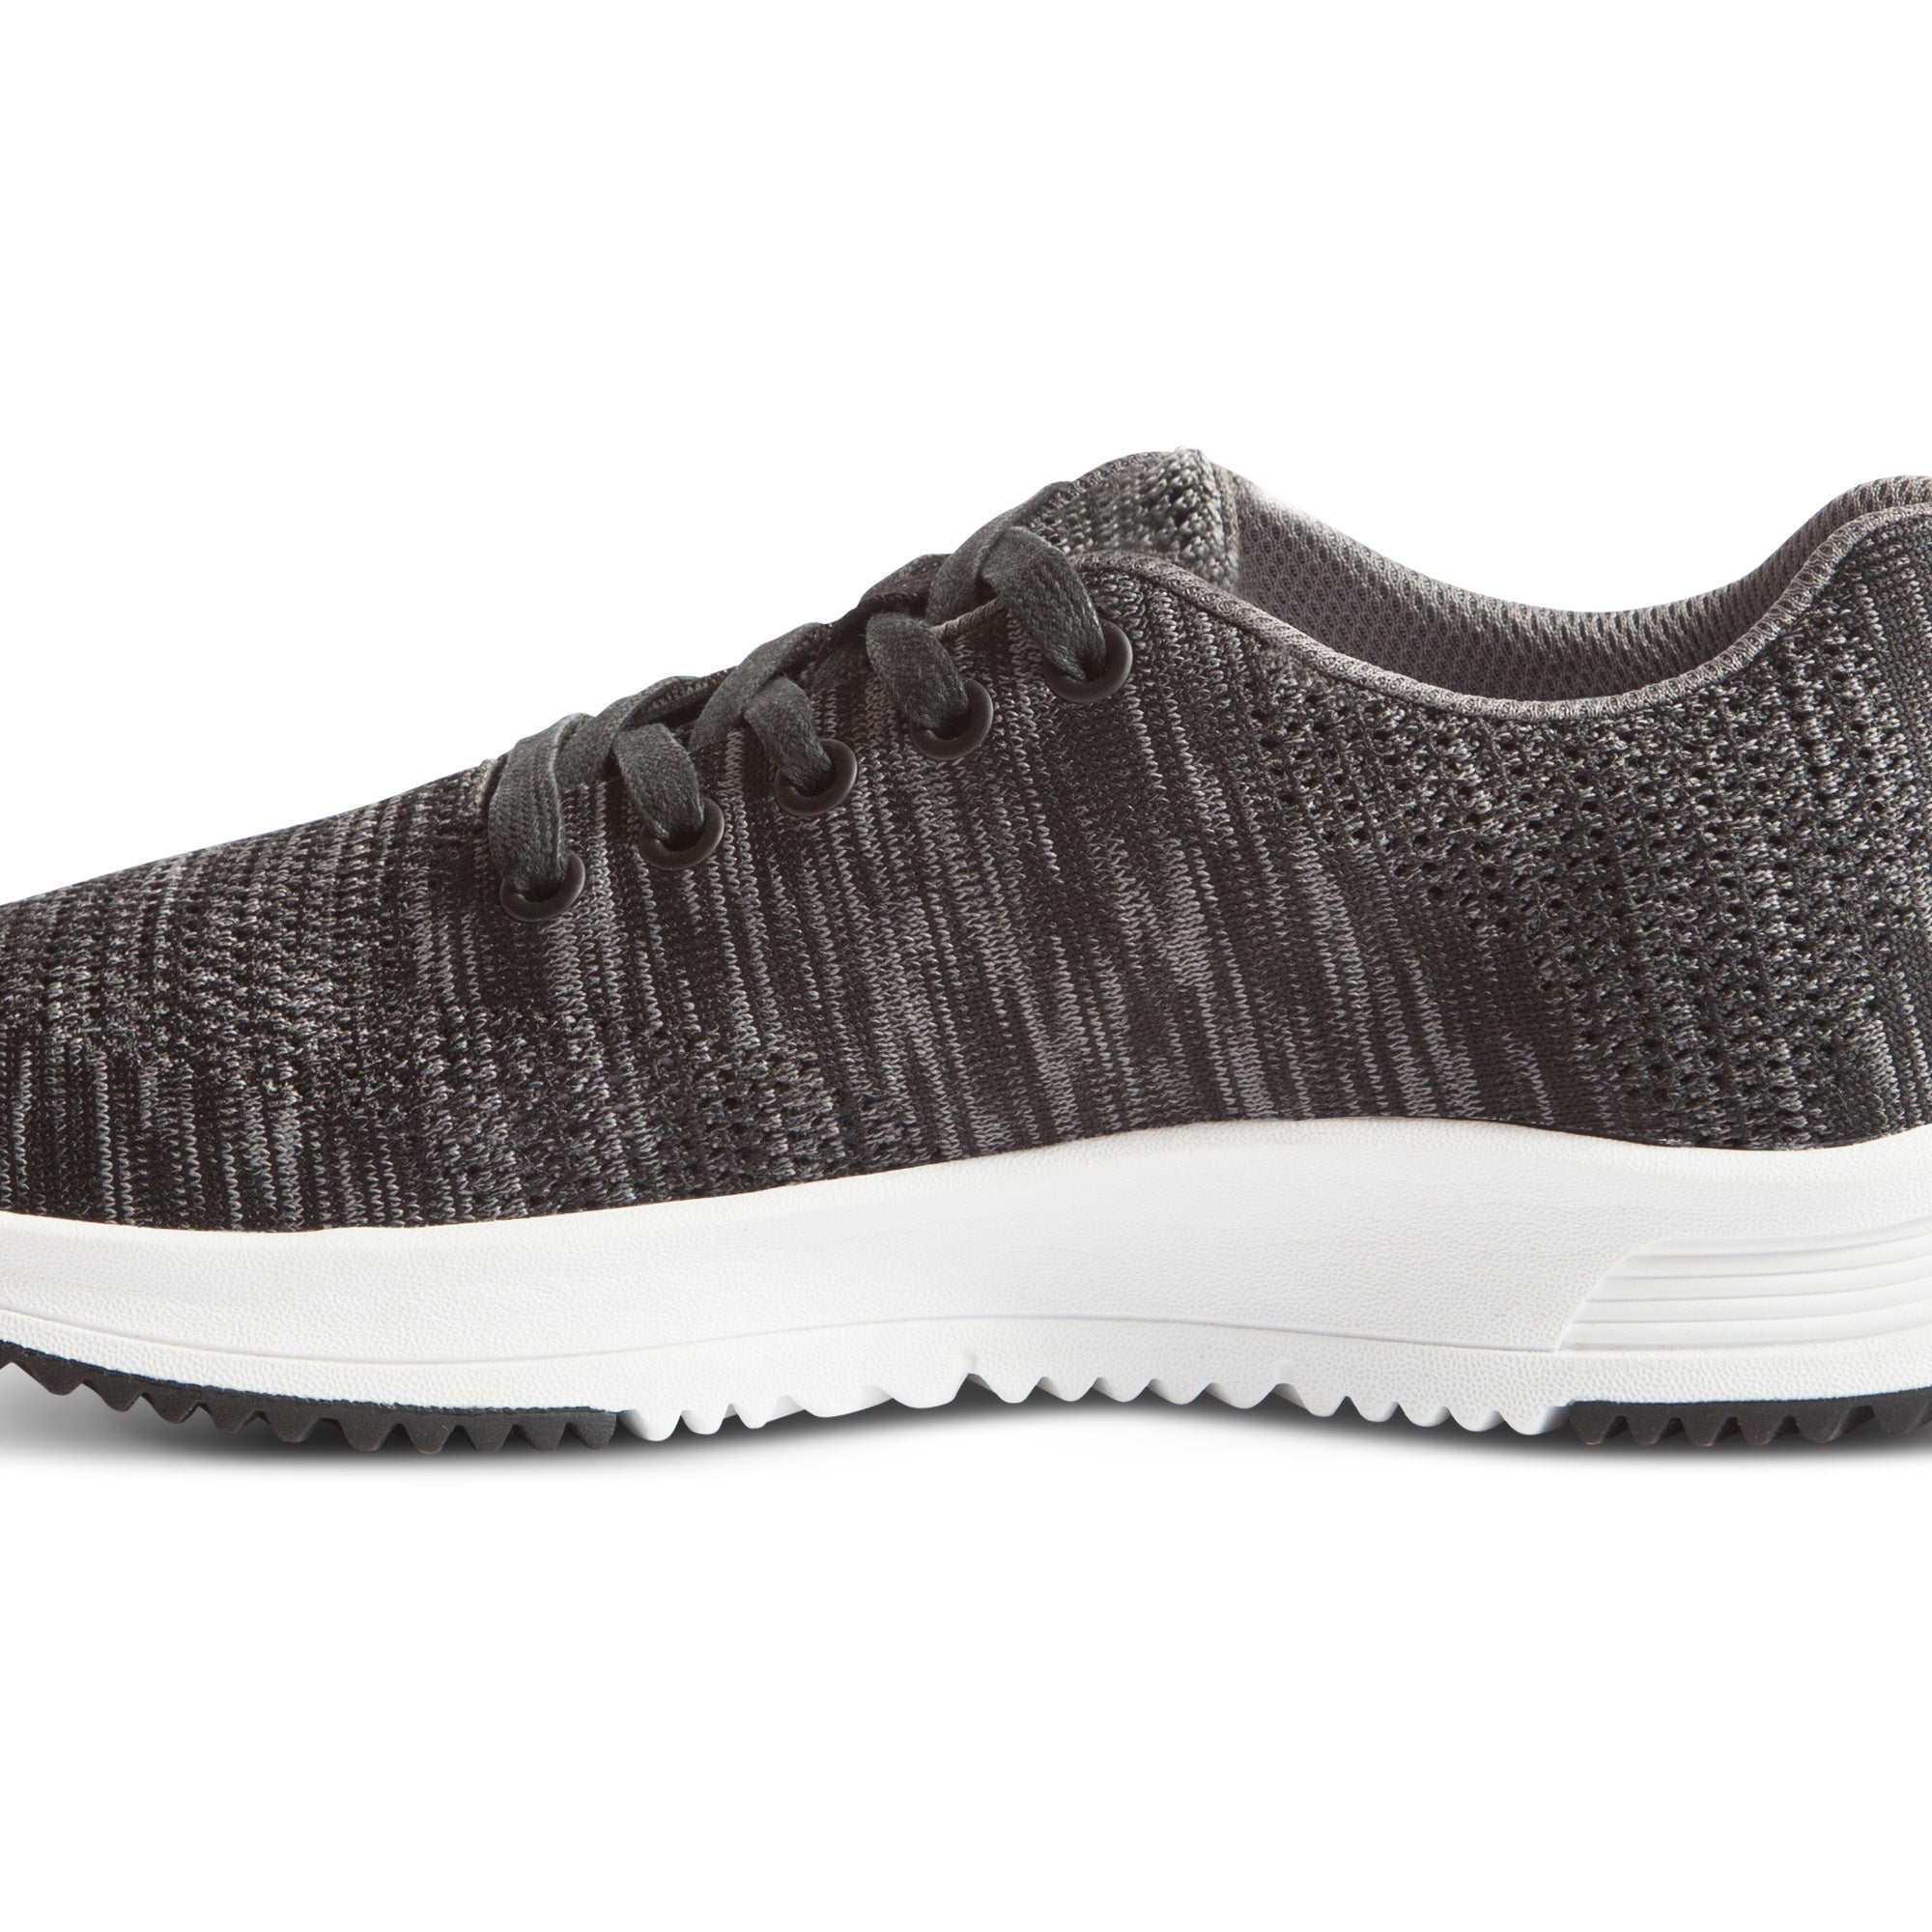 Tall Boy Trainer Knit - Black/Grey